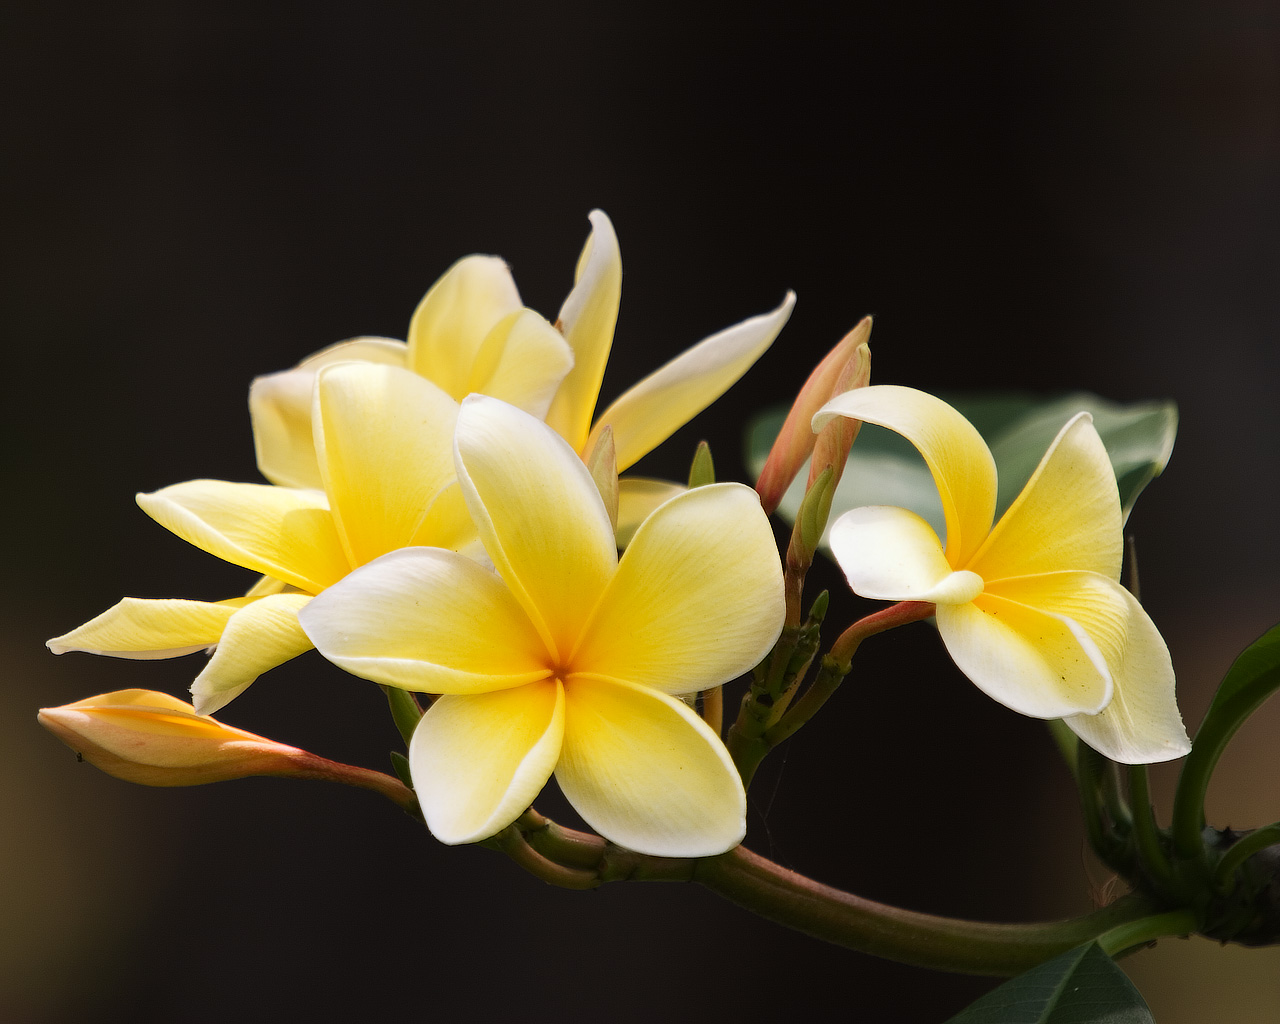 Flowers wallpaper frangipani flowers wallpaper frangipani flowers